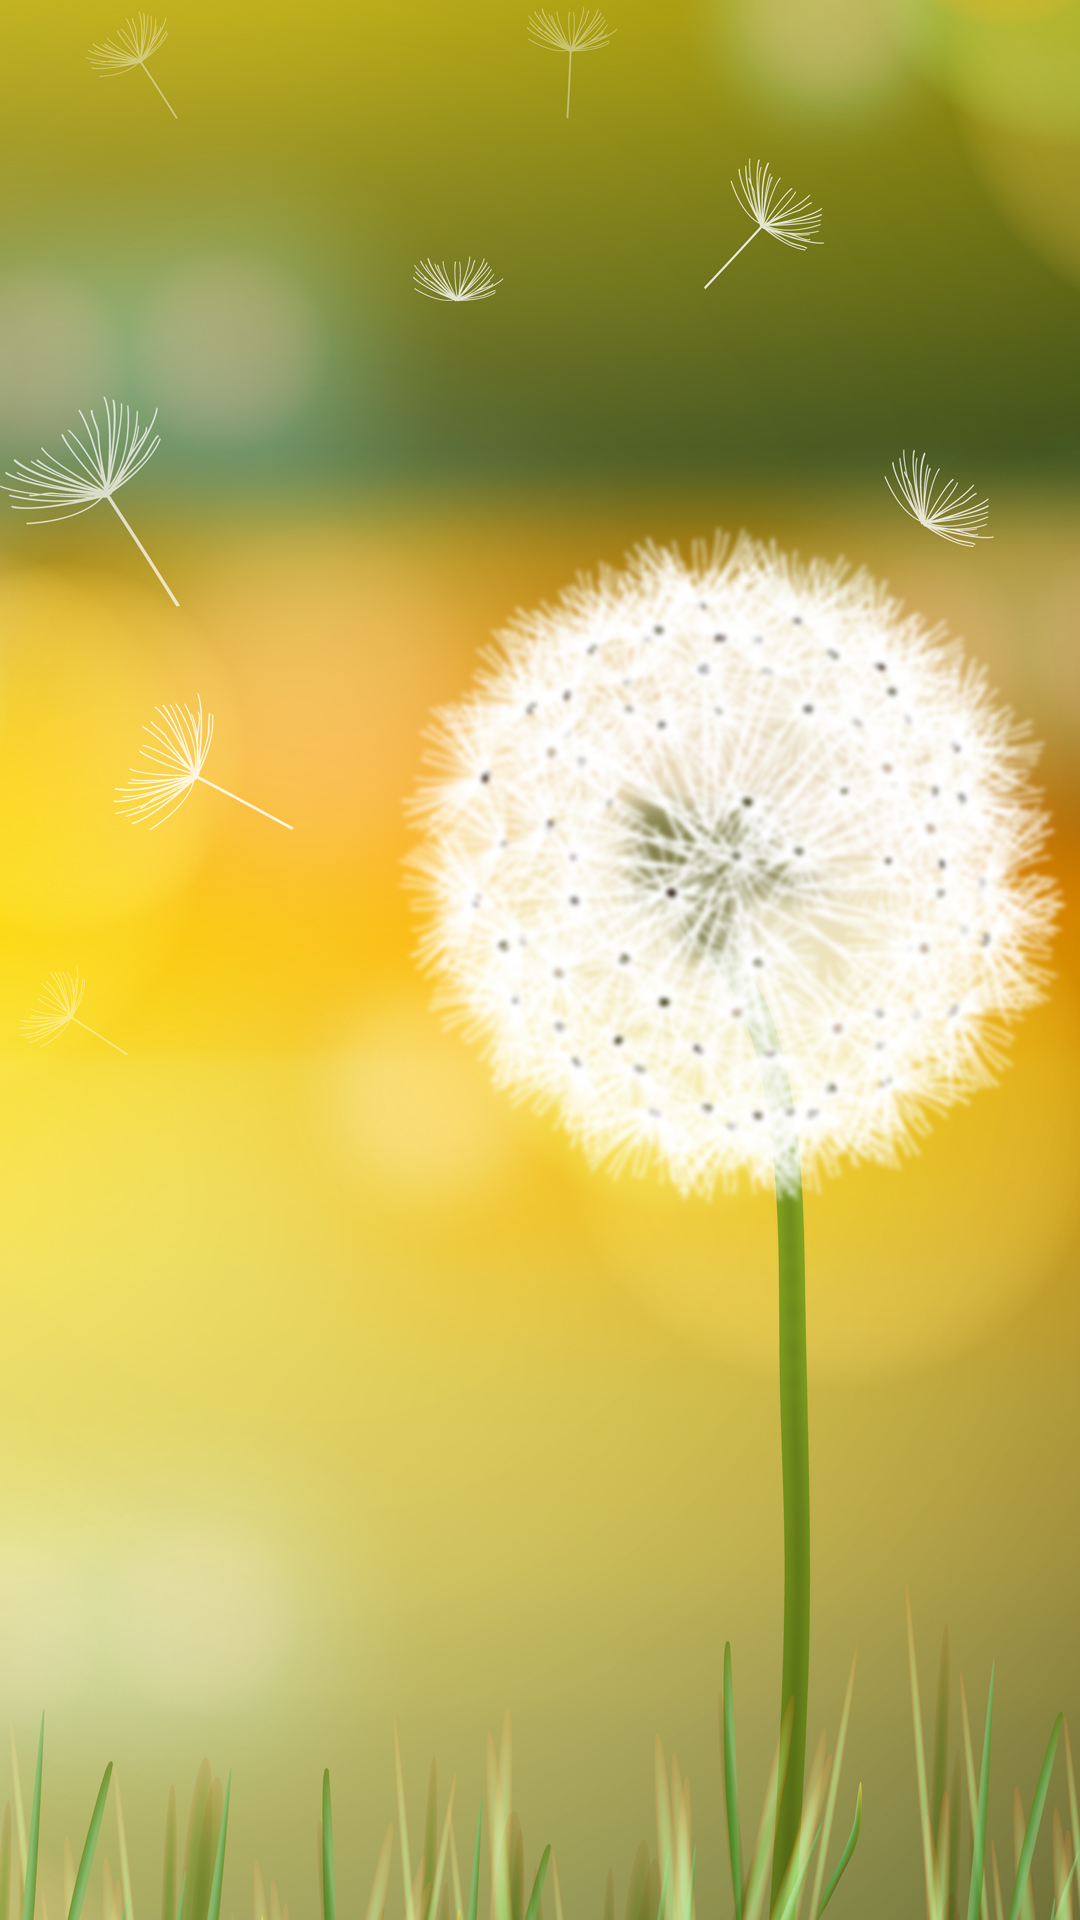 Weed Iphone 5 Wallpaper Dandelion Breeze Hd Wallpaper For Your Mobile Phone